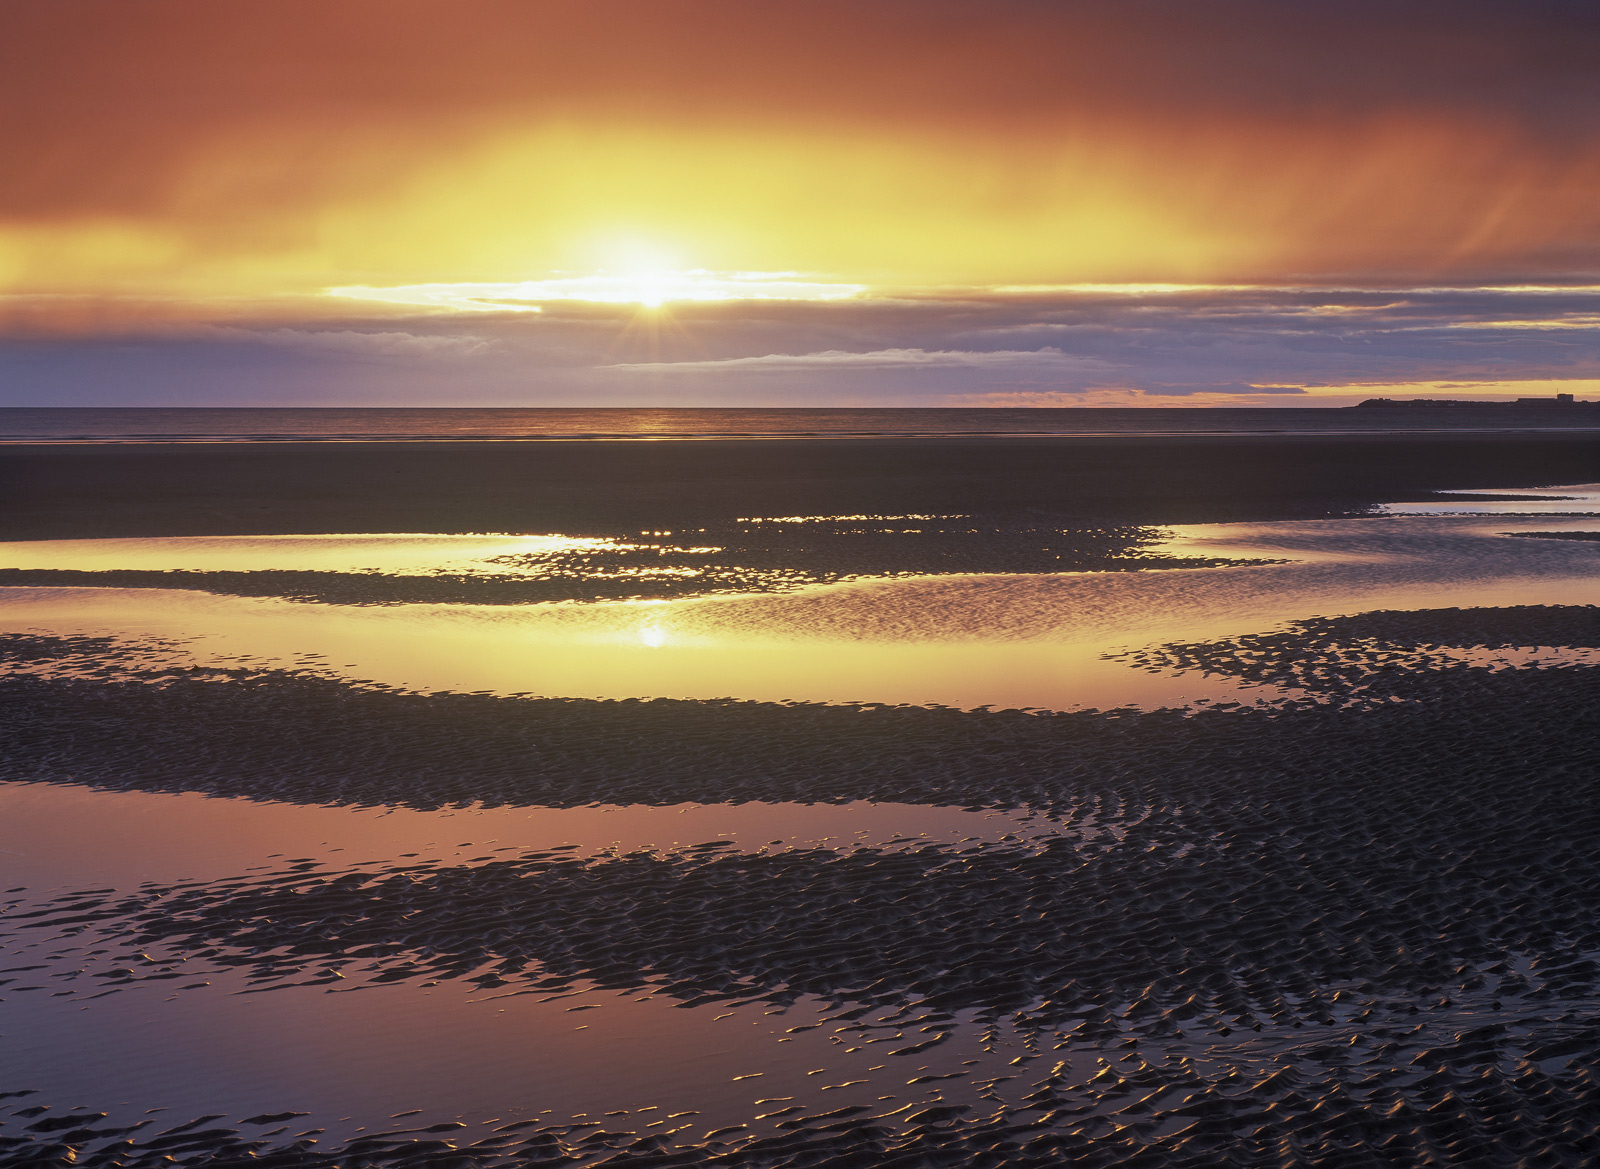 A glorious sunrise over Burghead as viewed from Findhorn beach across shallow depressions and rivulets in the soft sand of the...